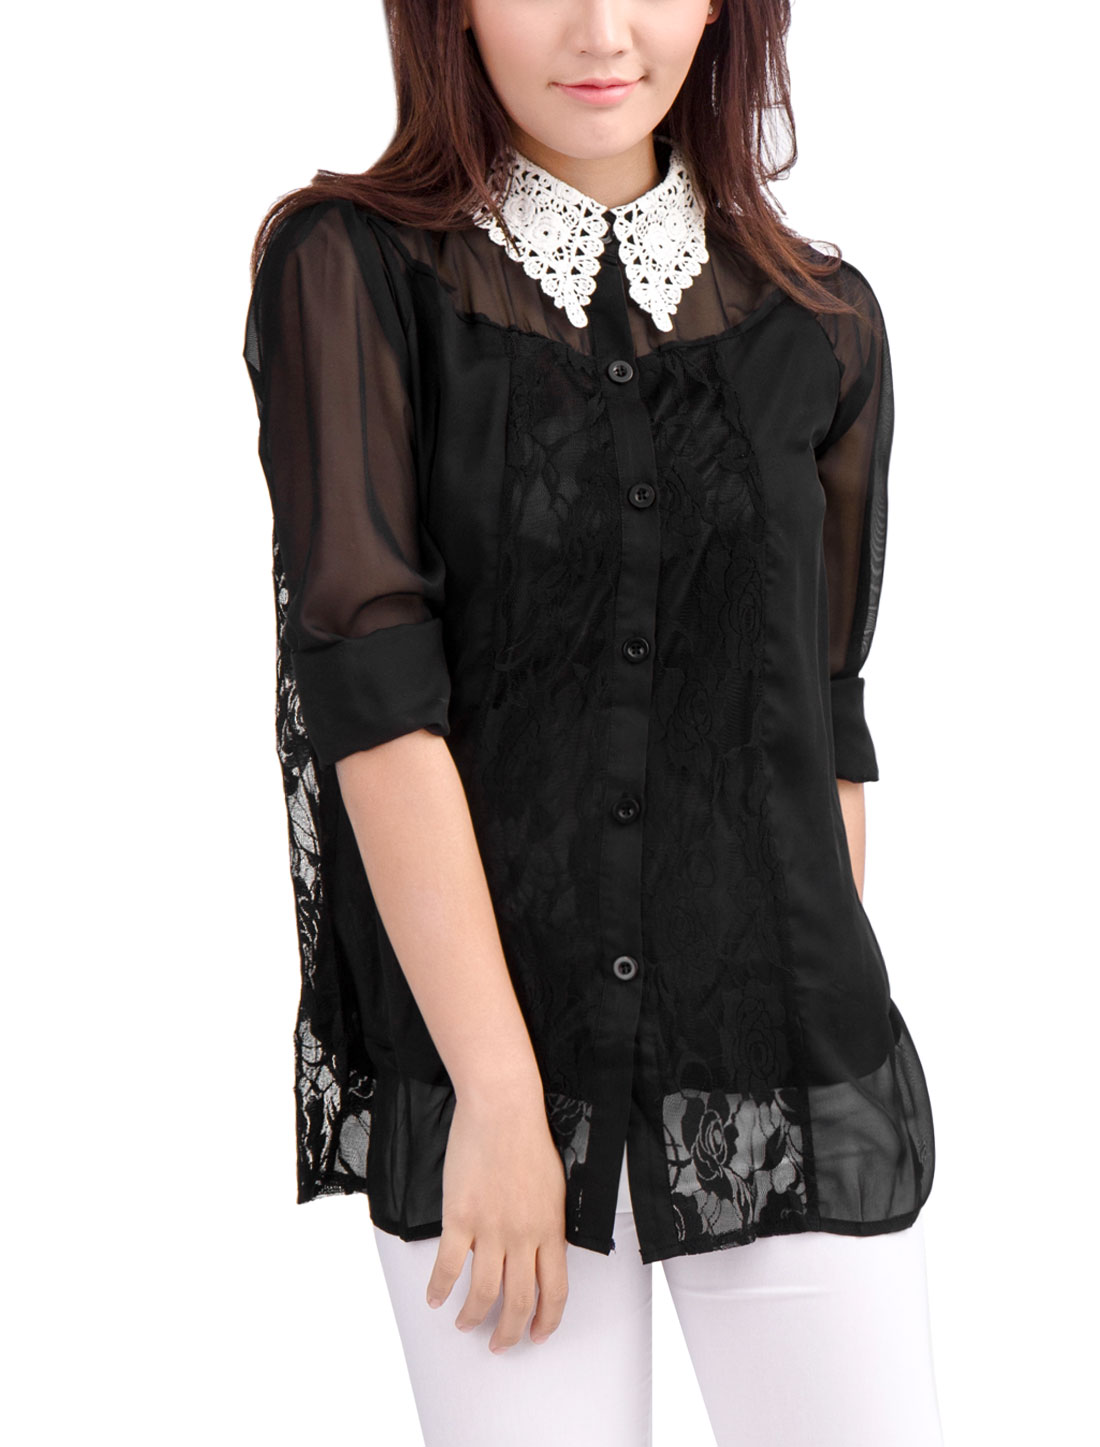 Lady Solid Color Lace Panel Panel Black Casual Lined Blouse L